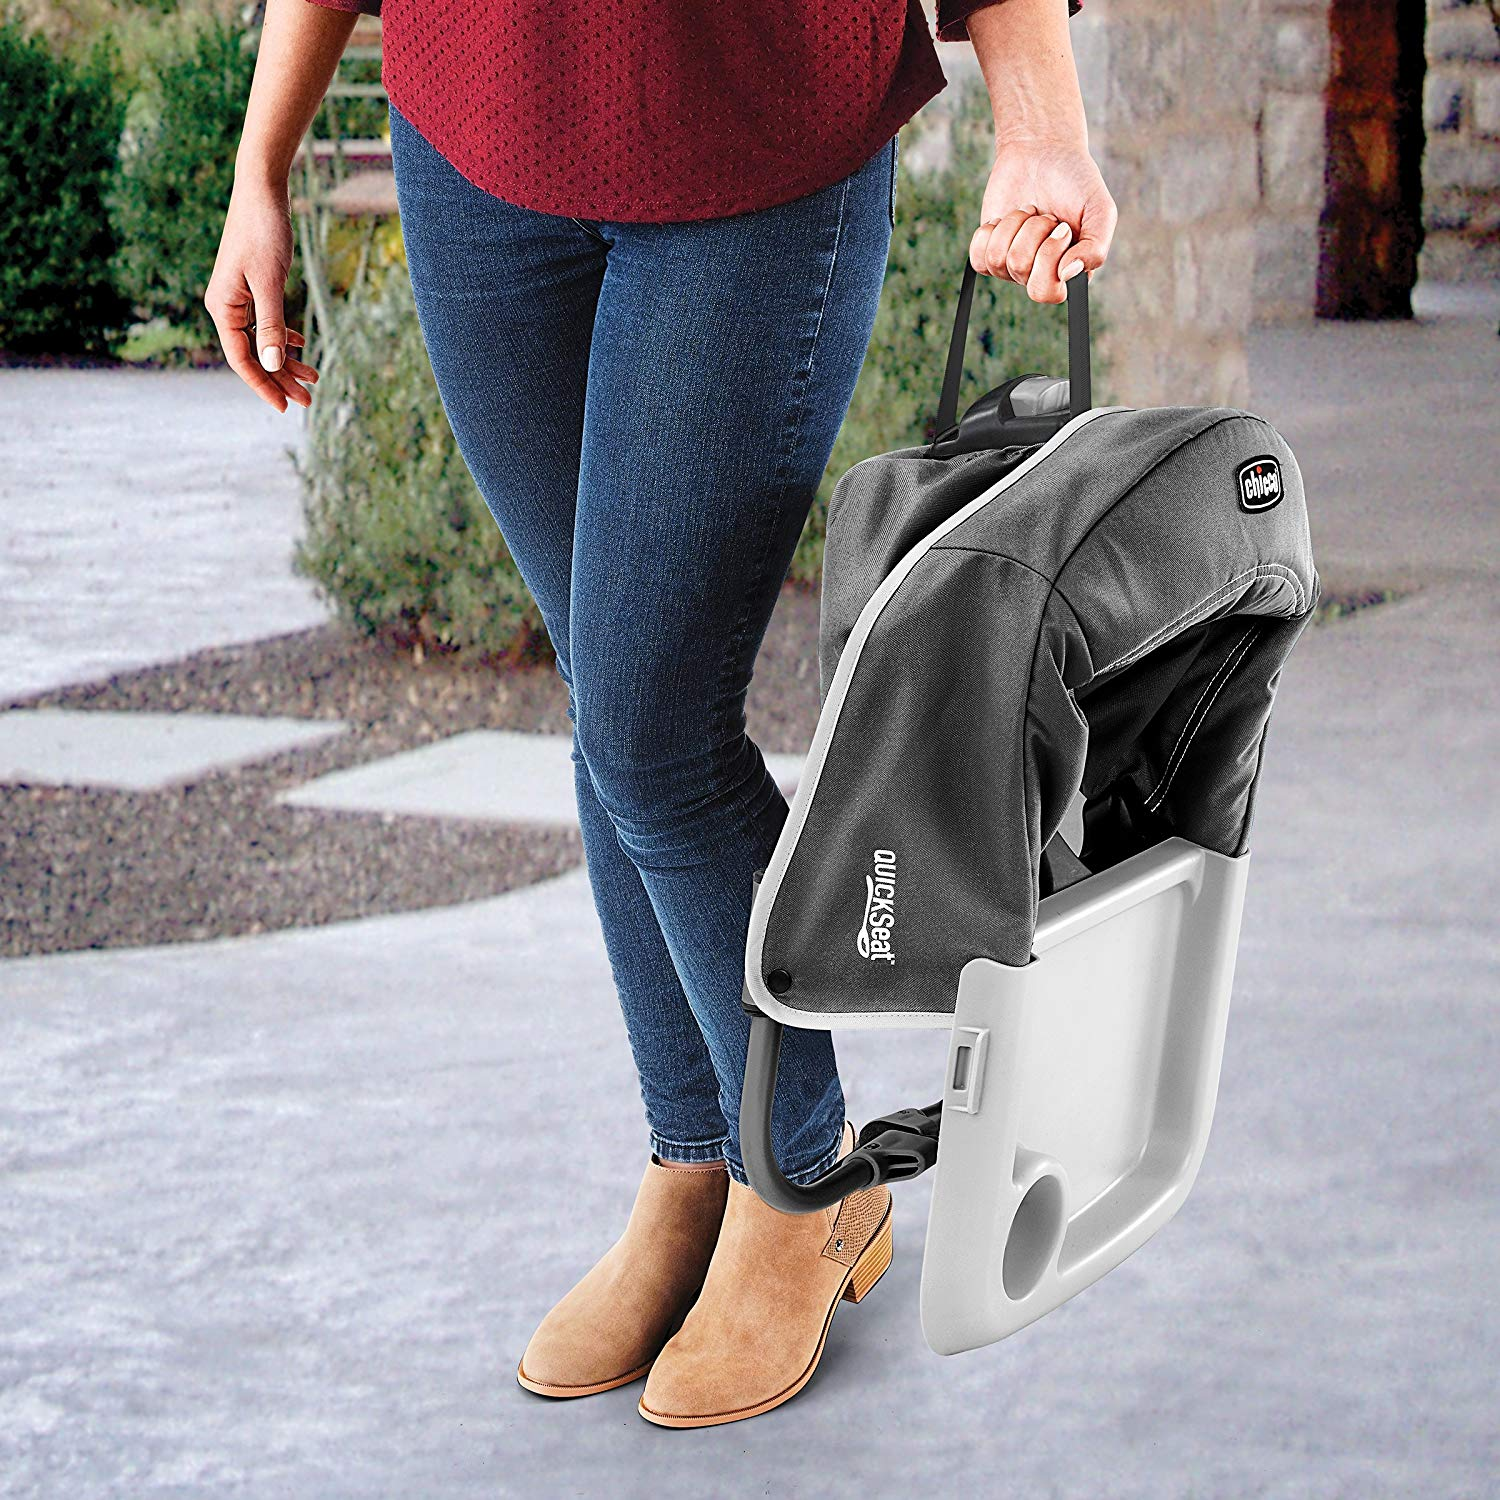 Best Portable Travel Chair 2